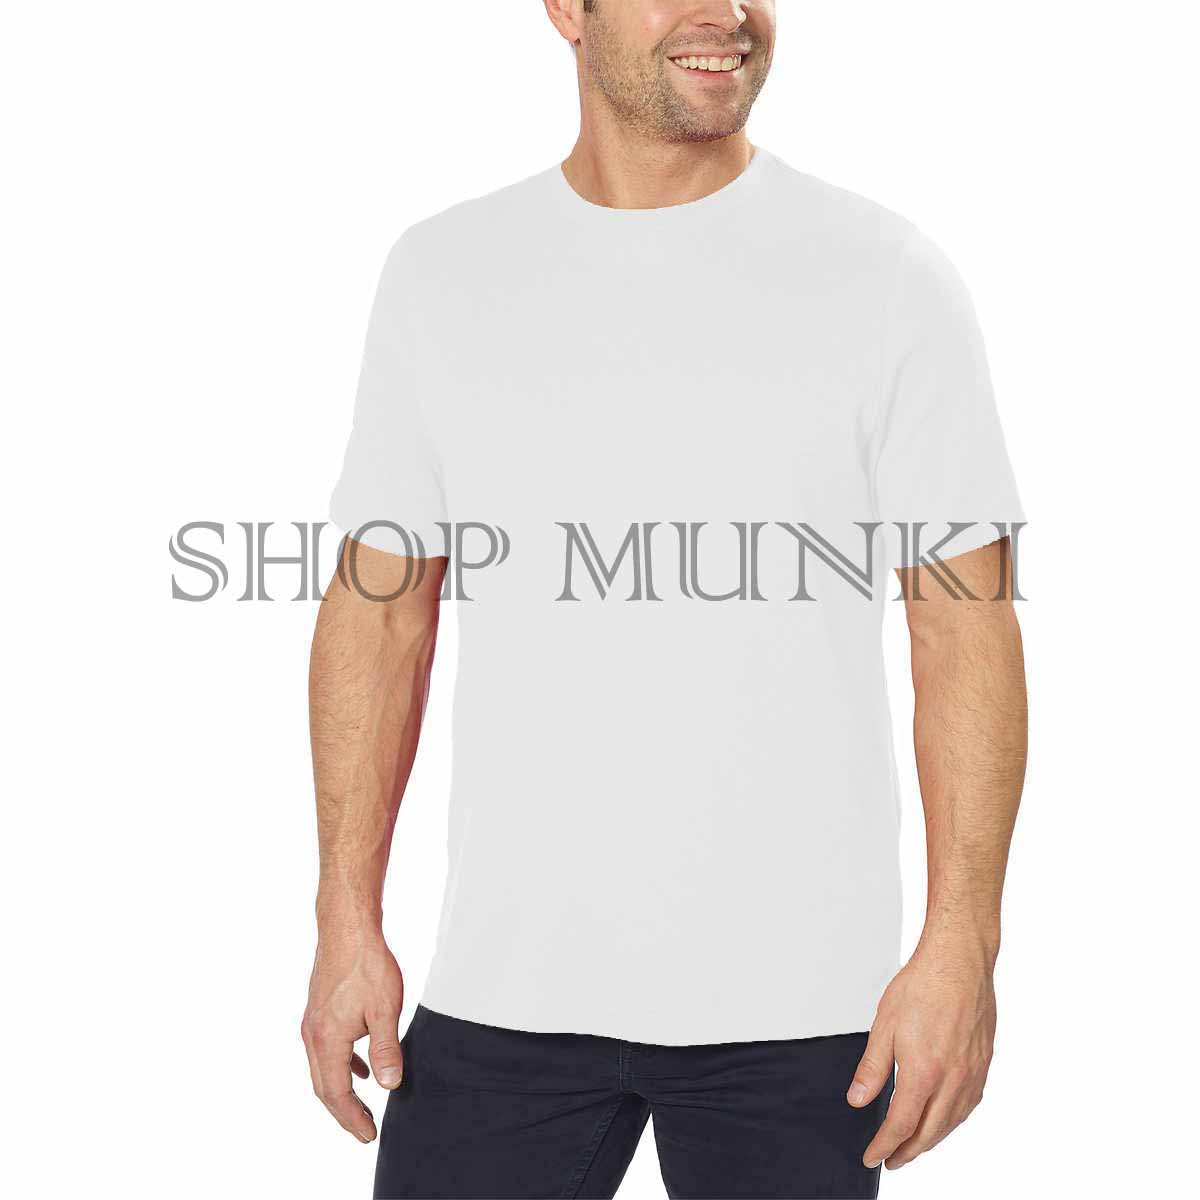 Kirkland black t shirts xl - Kirkland Signature Mens 100 Peruvian Pima Cotton Crew